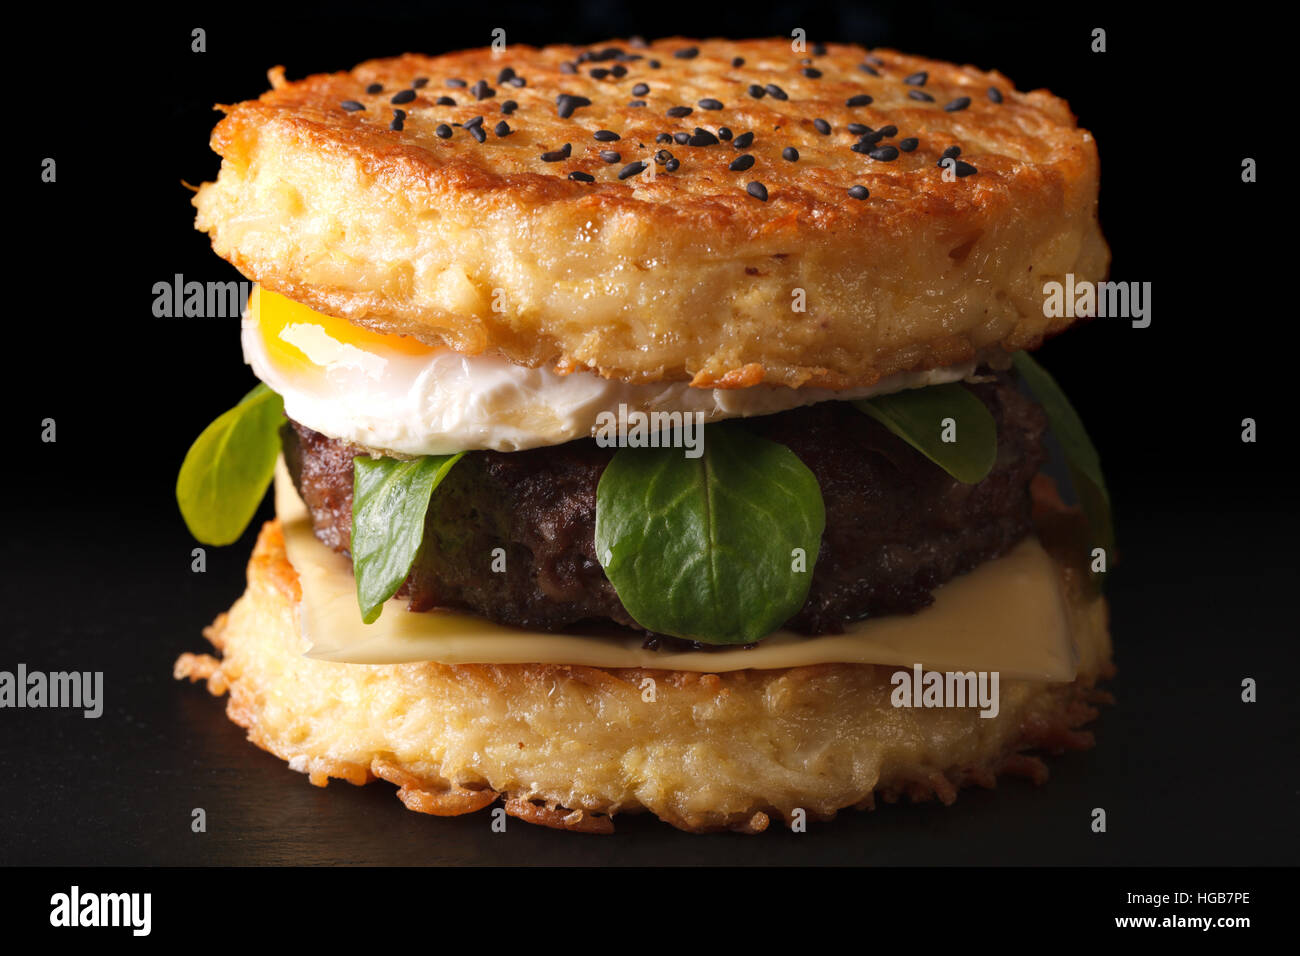 Trendy ramen burger with beef and eggs macro on a black background - Stock Image